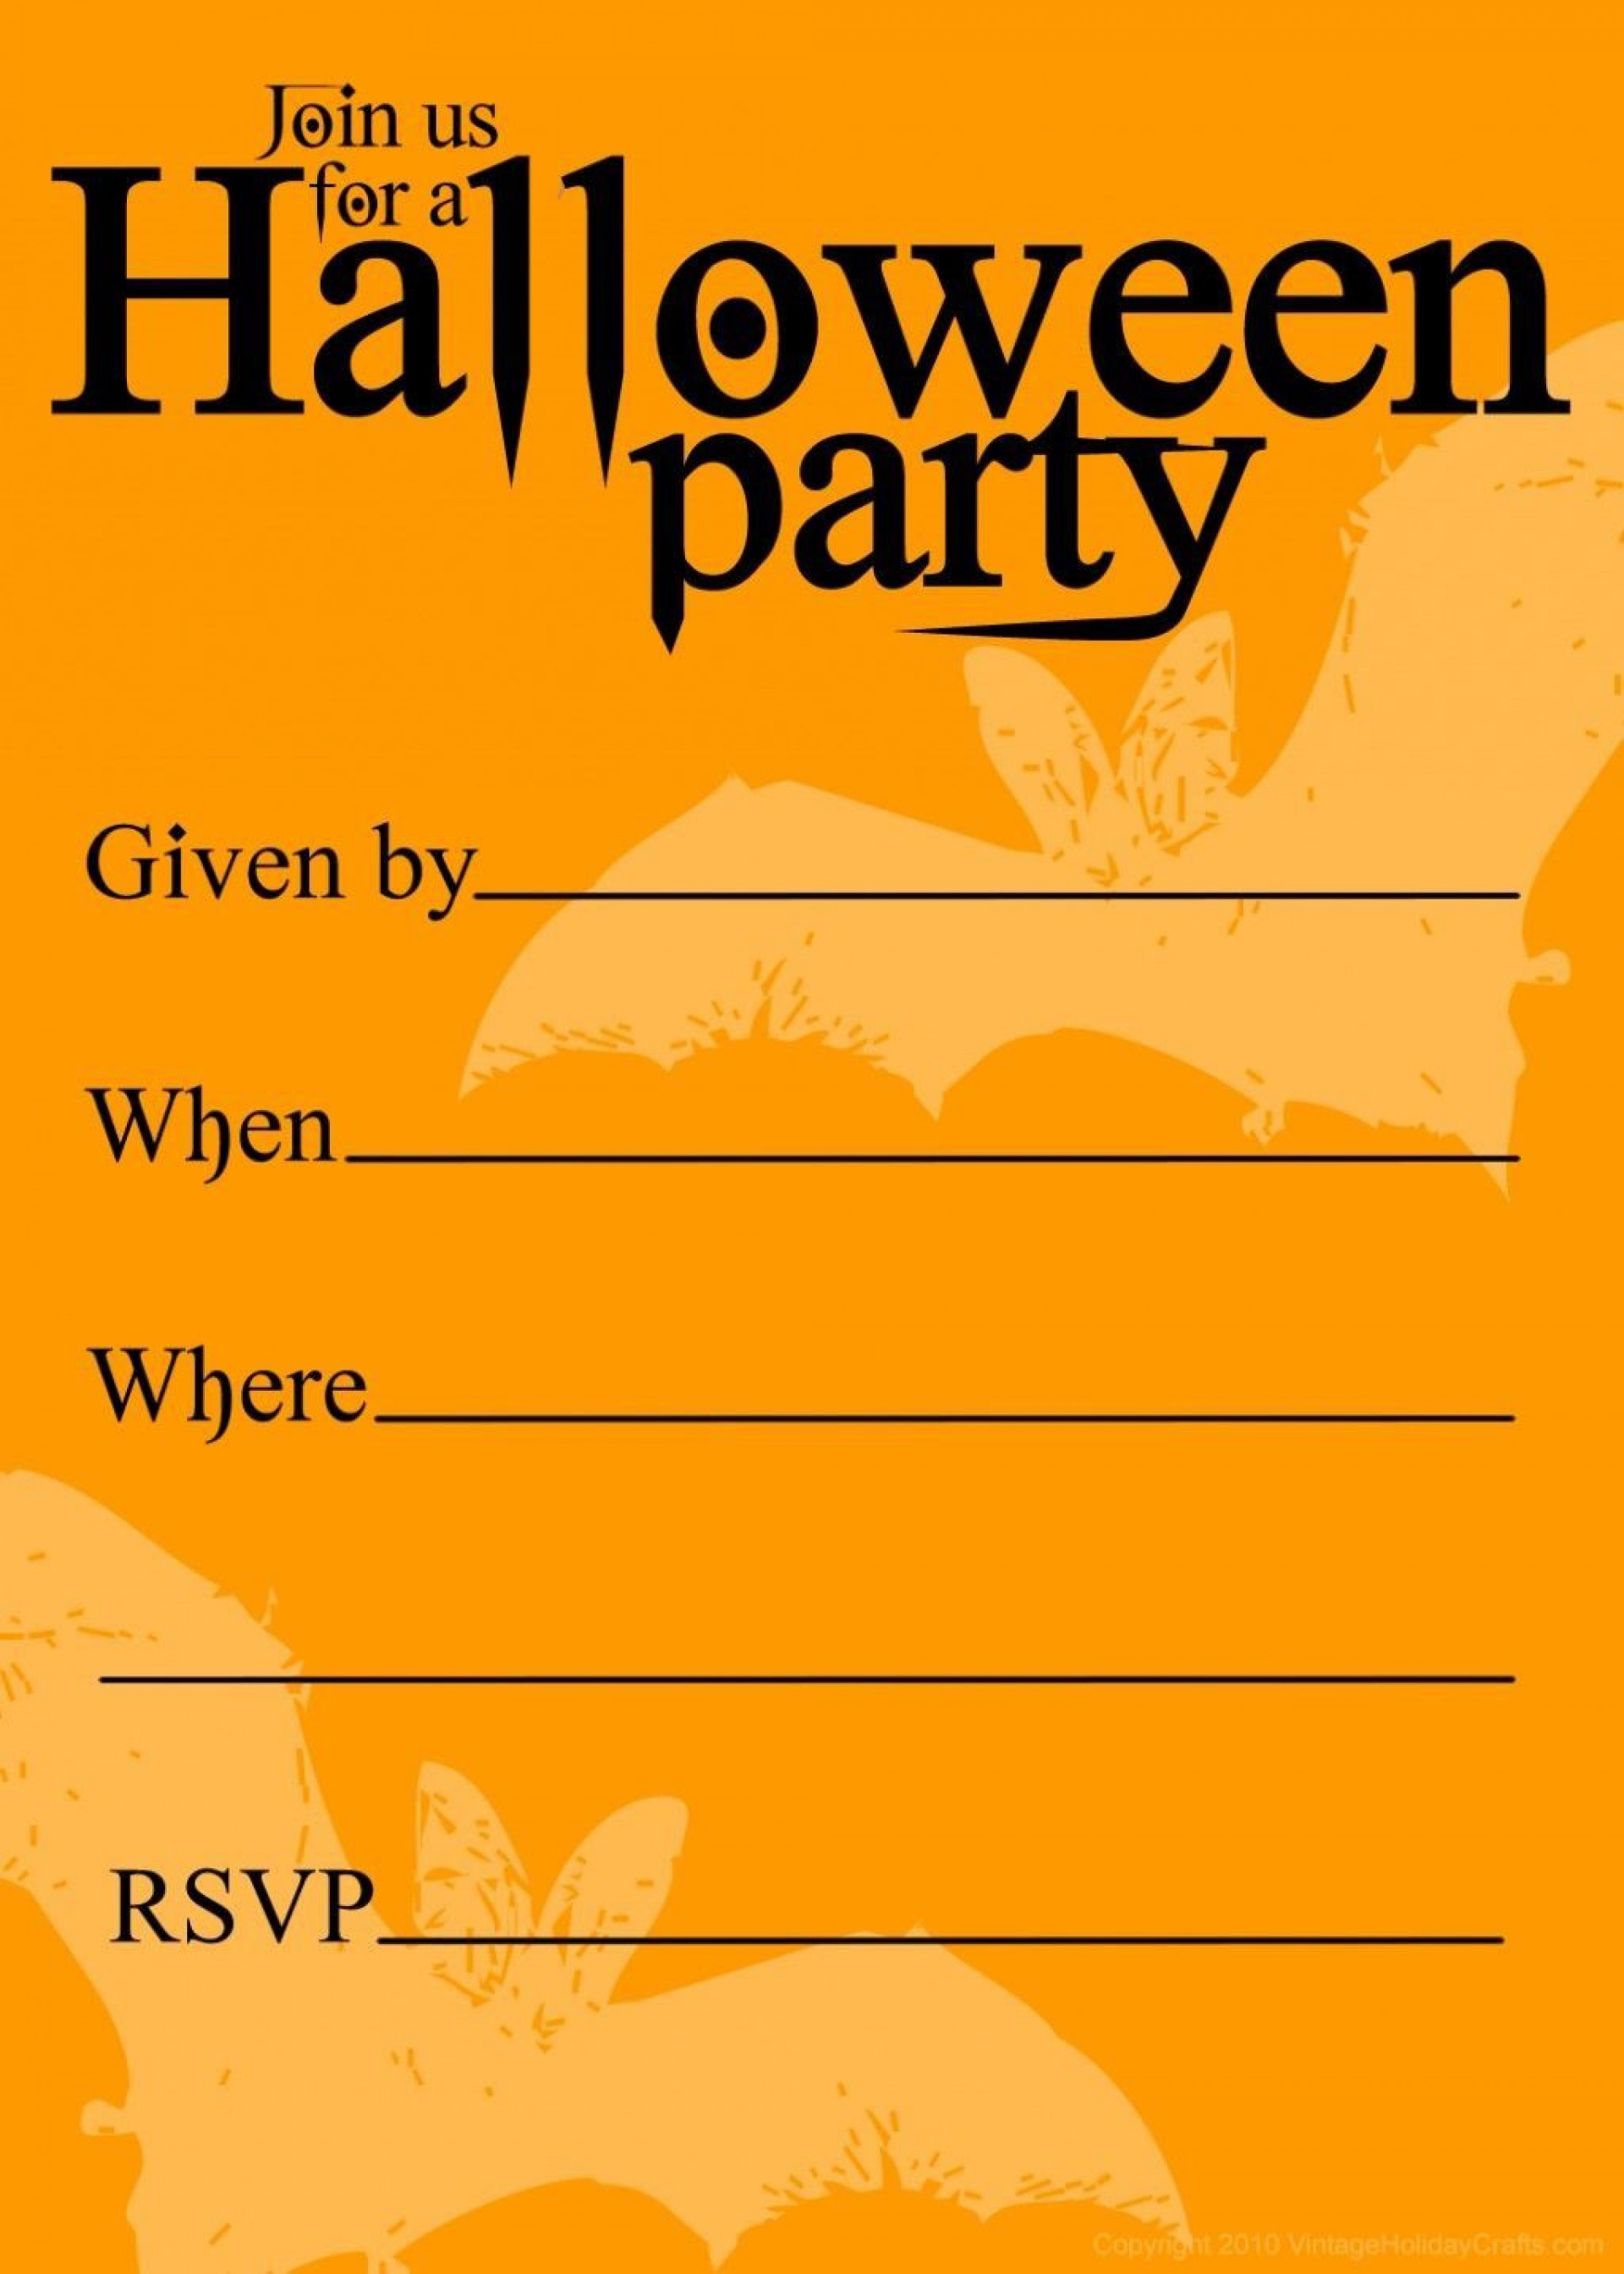 001 Dreaded Halloween Party Invitation Template Picture  Templates Scary Spooky1920